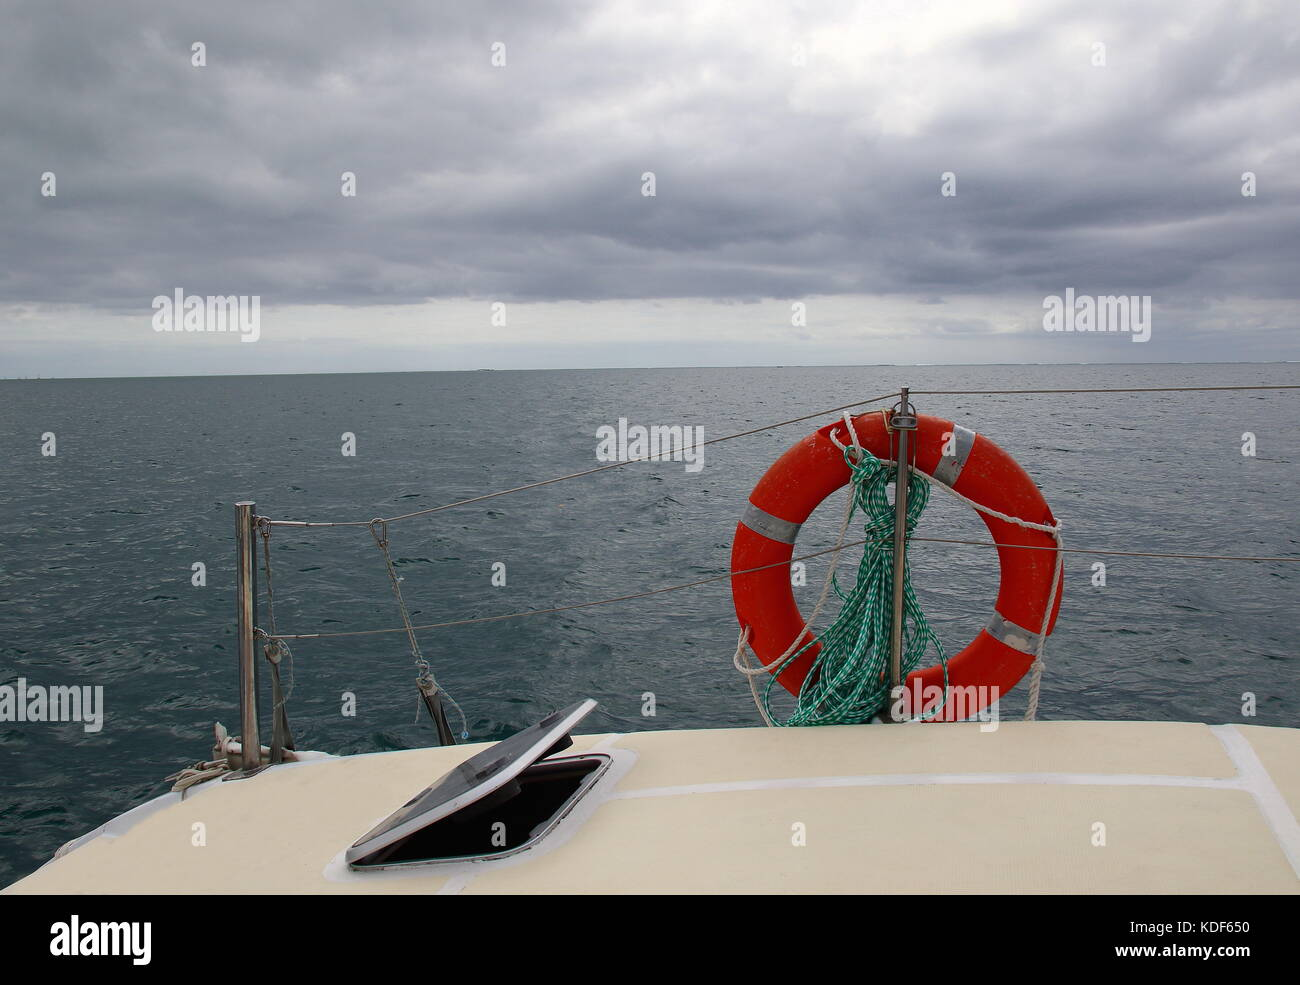 View of the open ocean from the deck of a yacht on a blustery cloudy day in landscape format with copy space - Stock Image